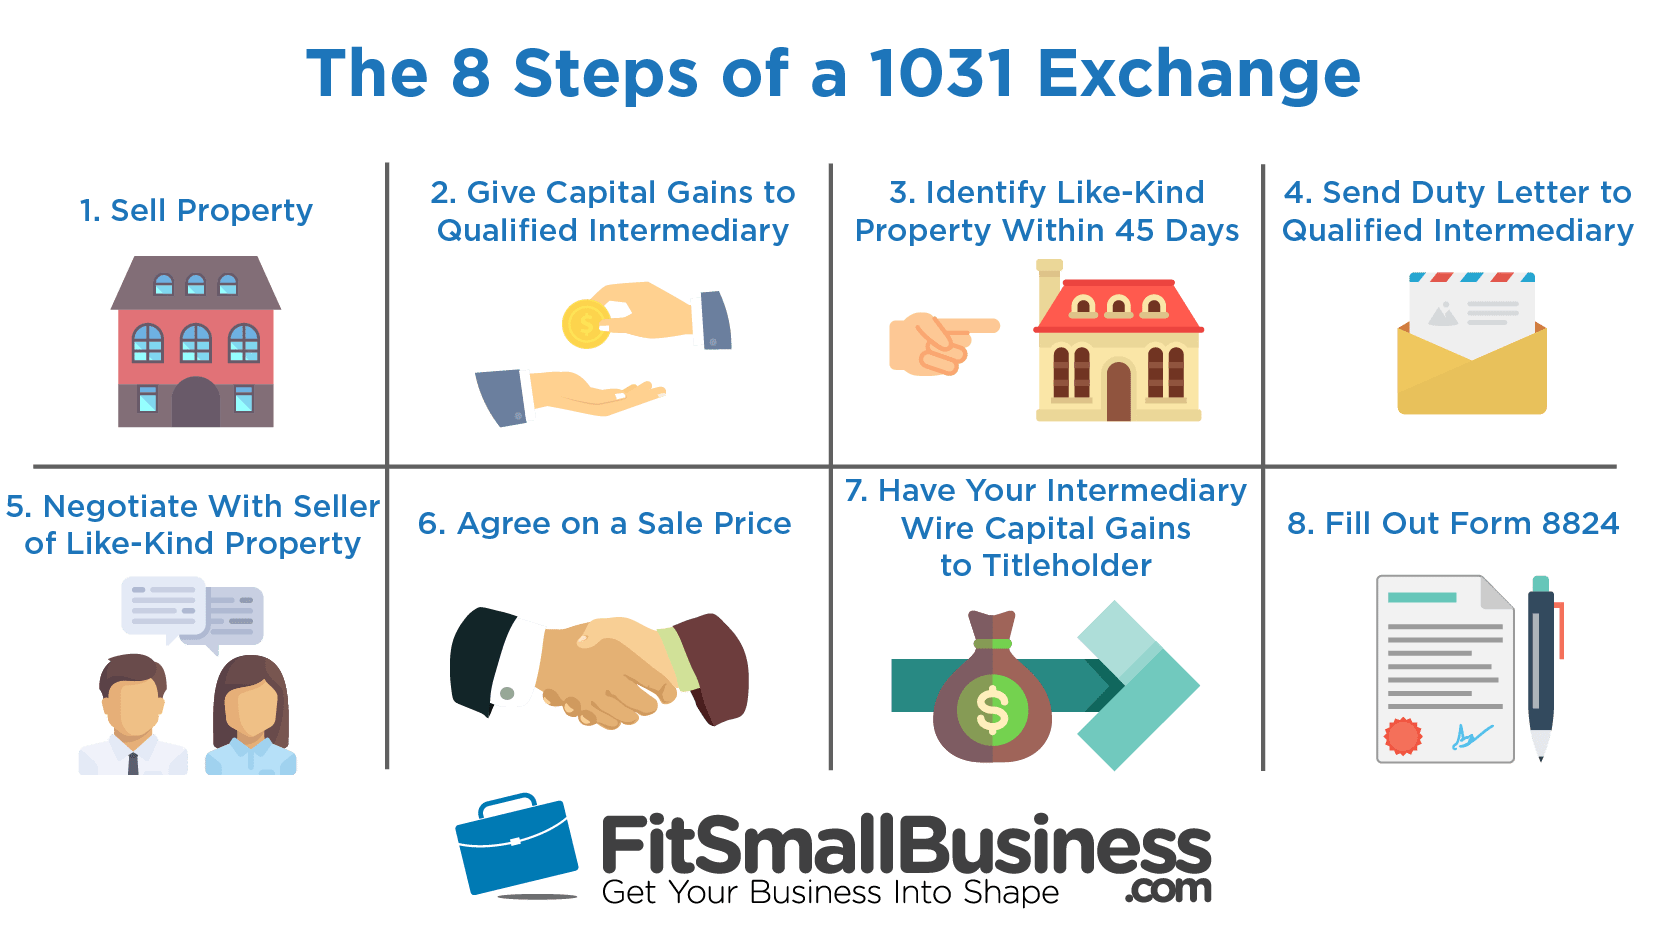 1031 Real Estate Exchange Rules